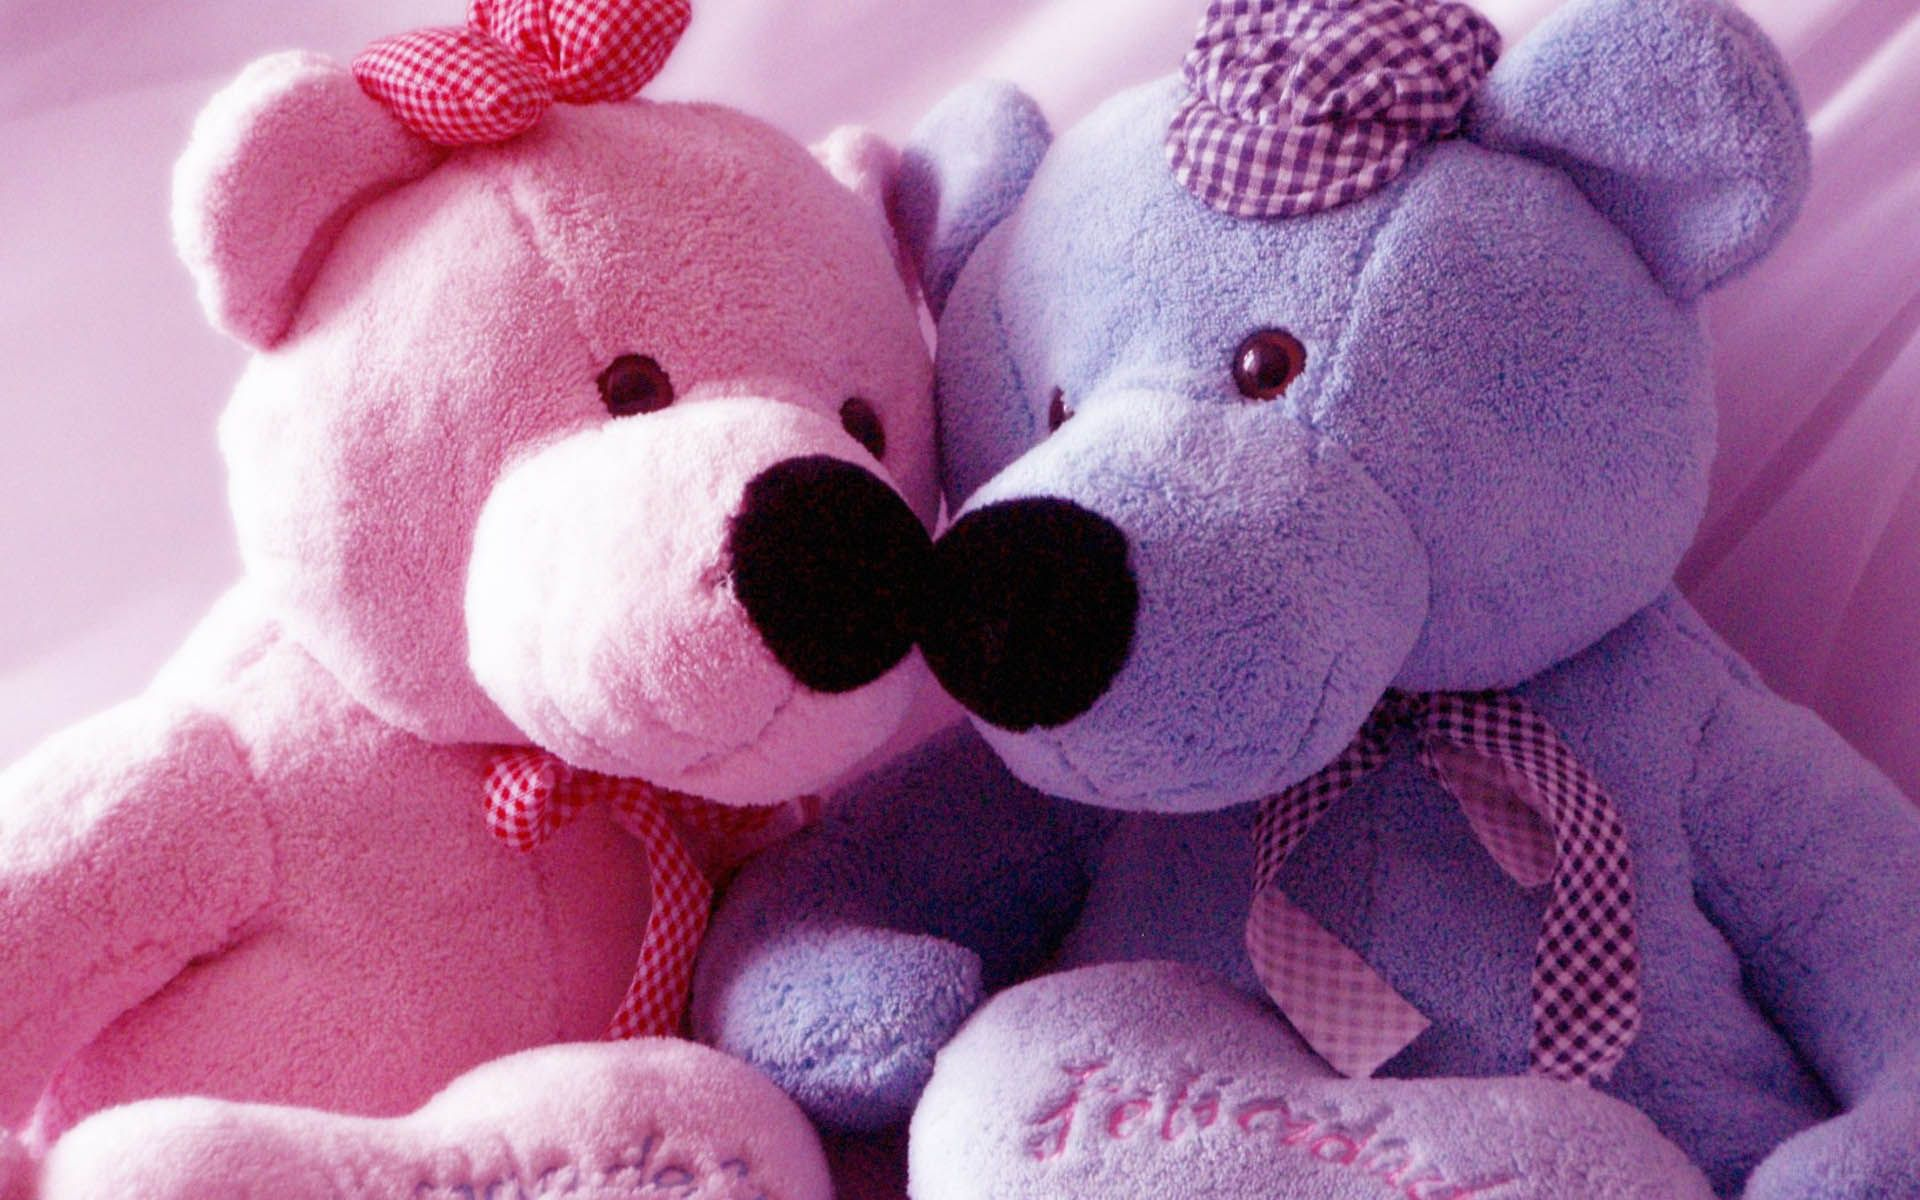 pink and blue teddy bear wallpaper computer 62 #7639 wallpaper